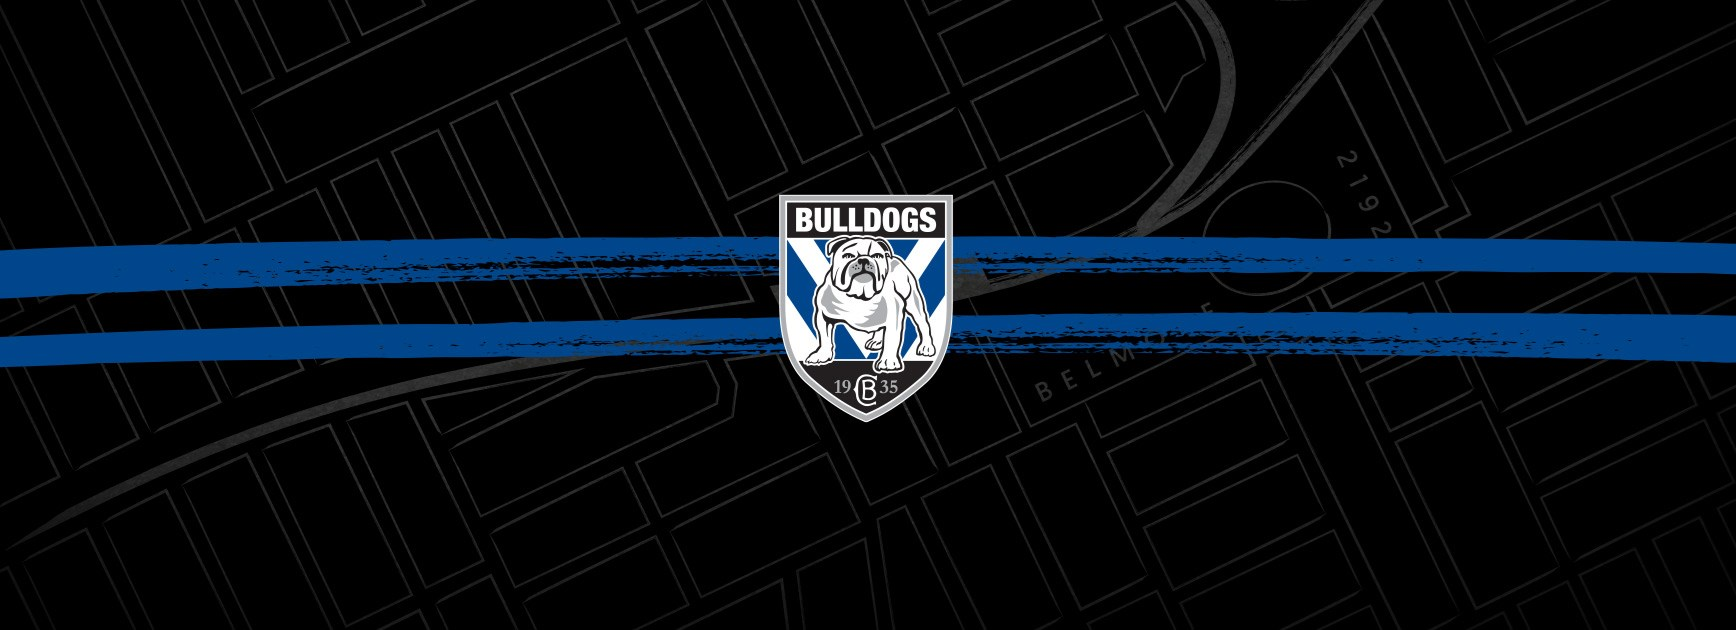 Dean Pay to step down as Bulldogs Head Coach